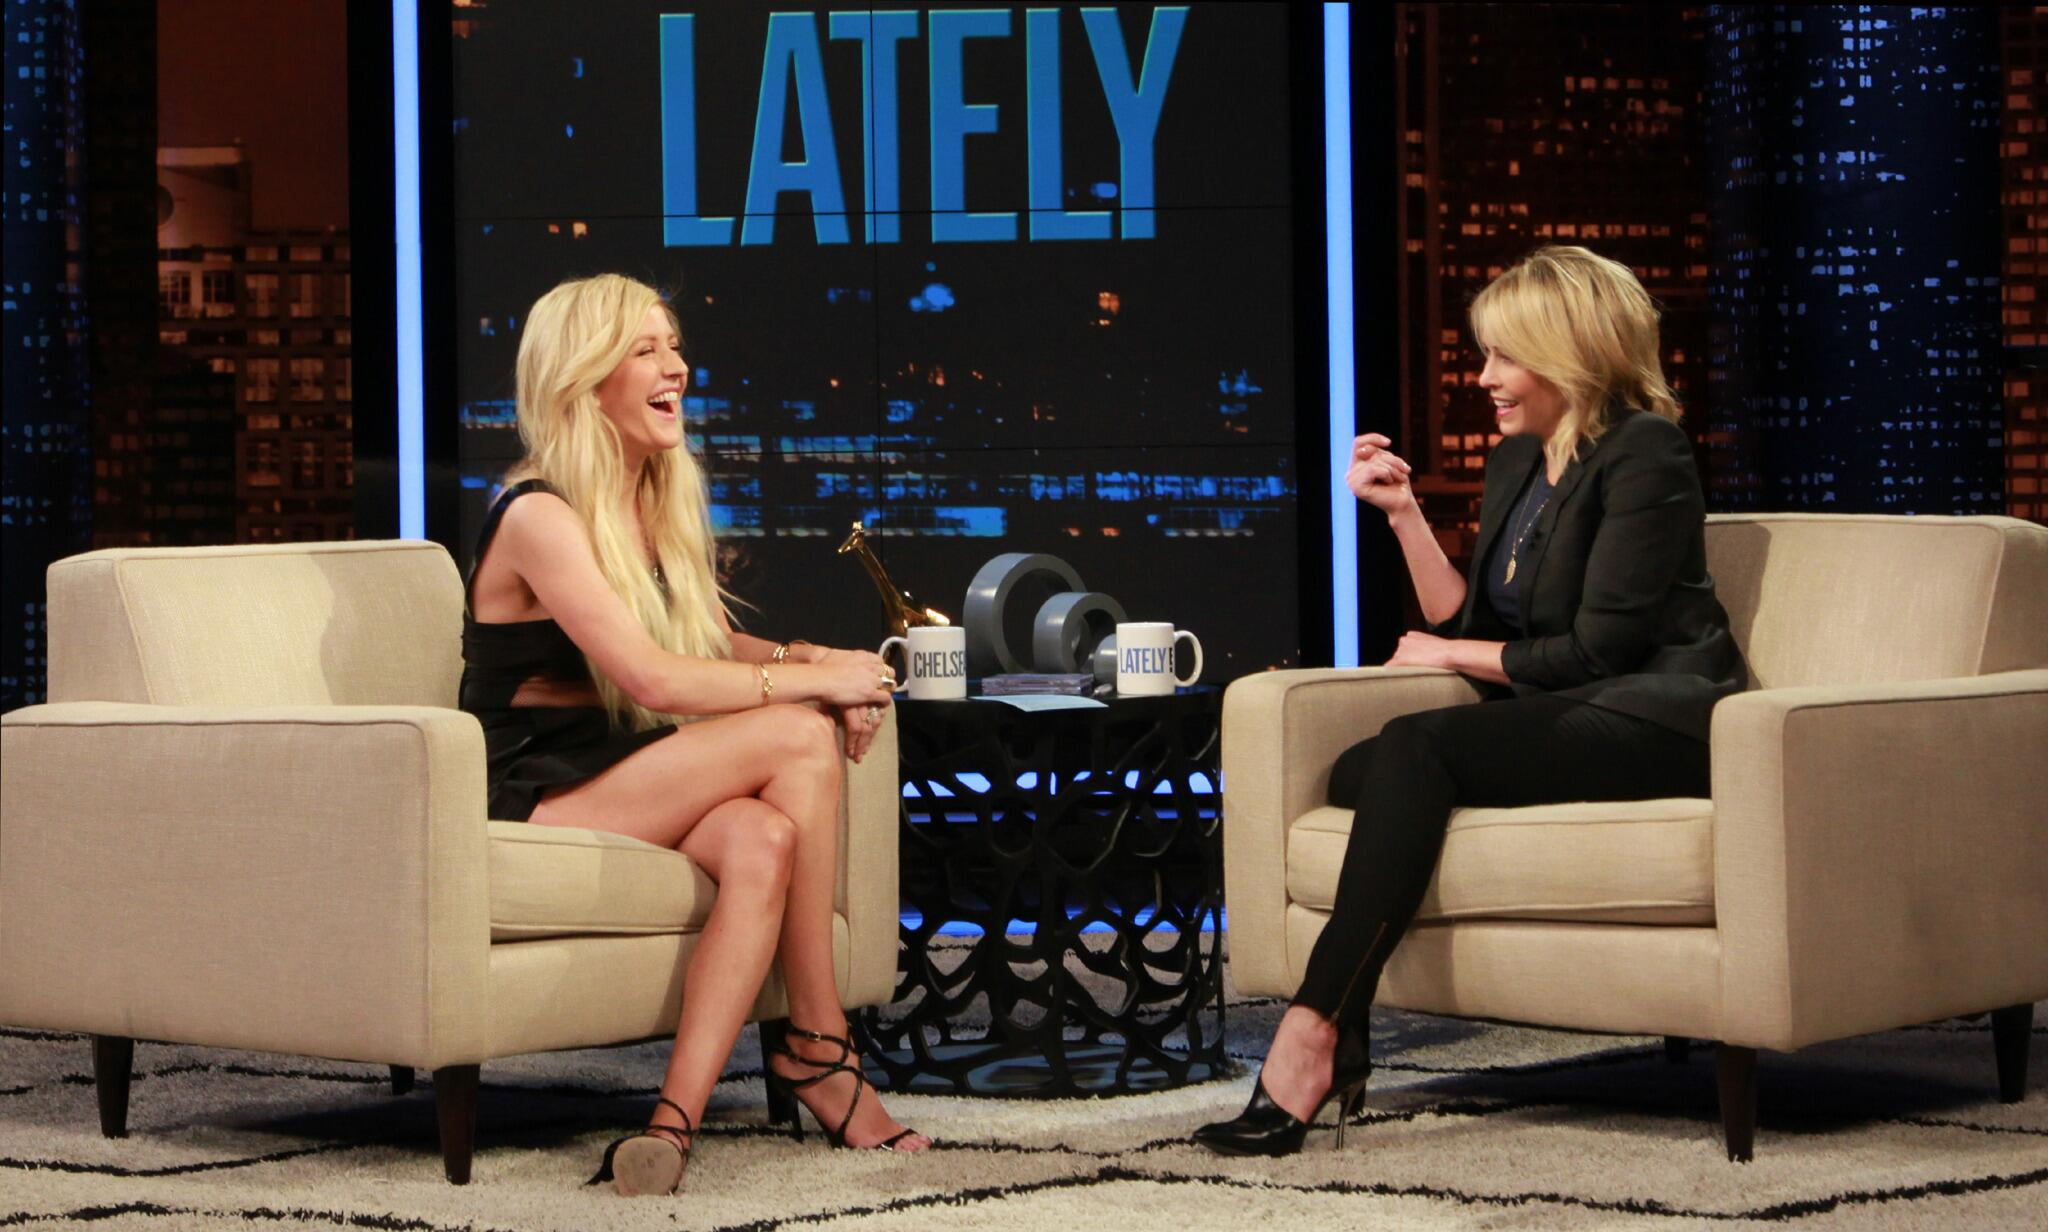 RT @chelseahandler: Tonight, Ellie Goulding. http://t.co/A04lAPxO3y